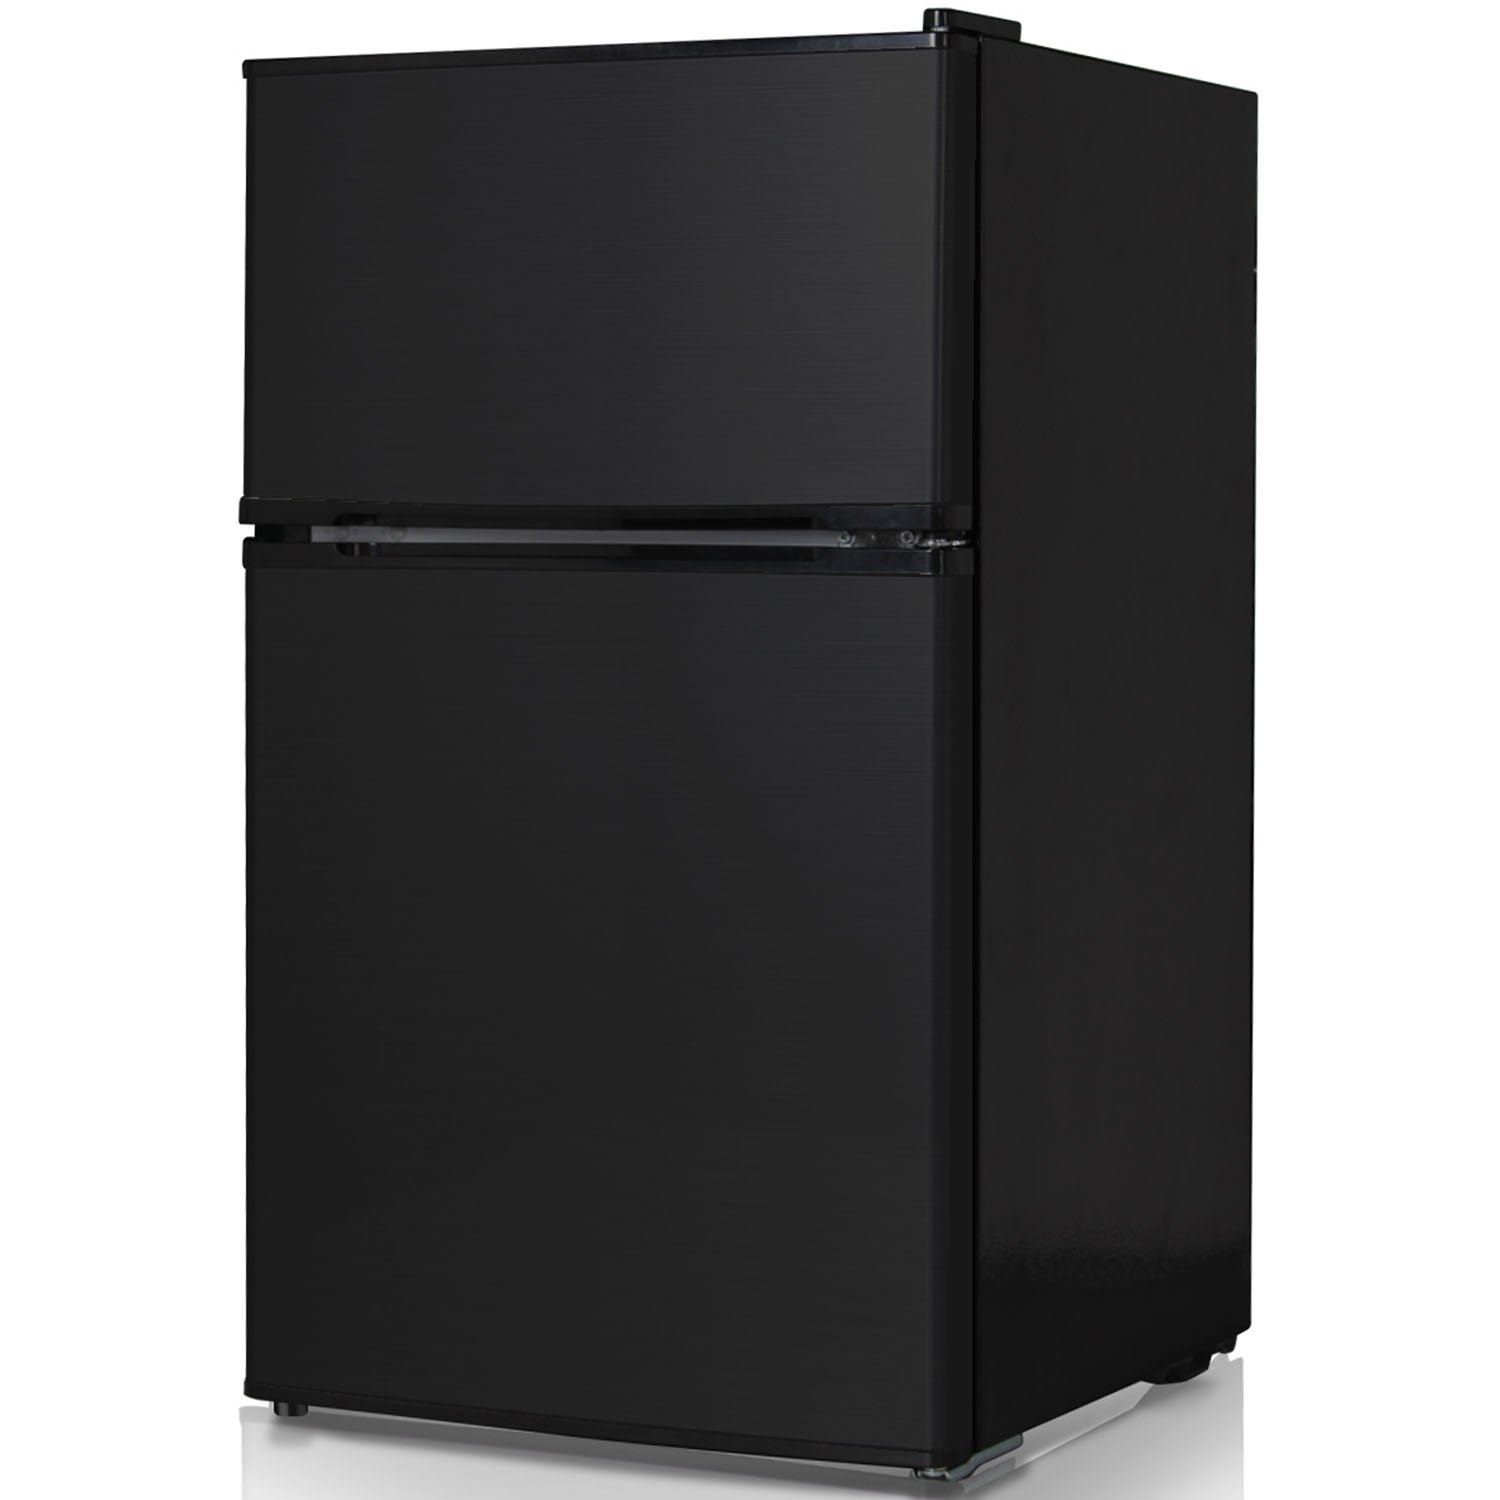 3: Lorell Compact Refrigerator With Freezer LLR72313